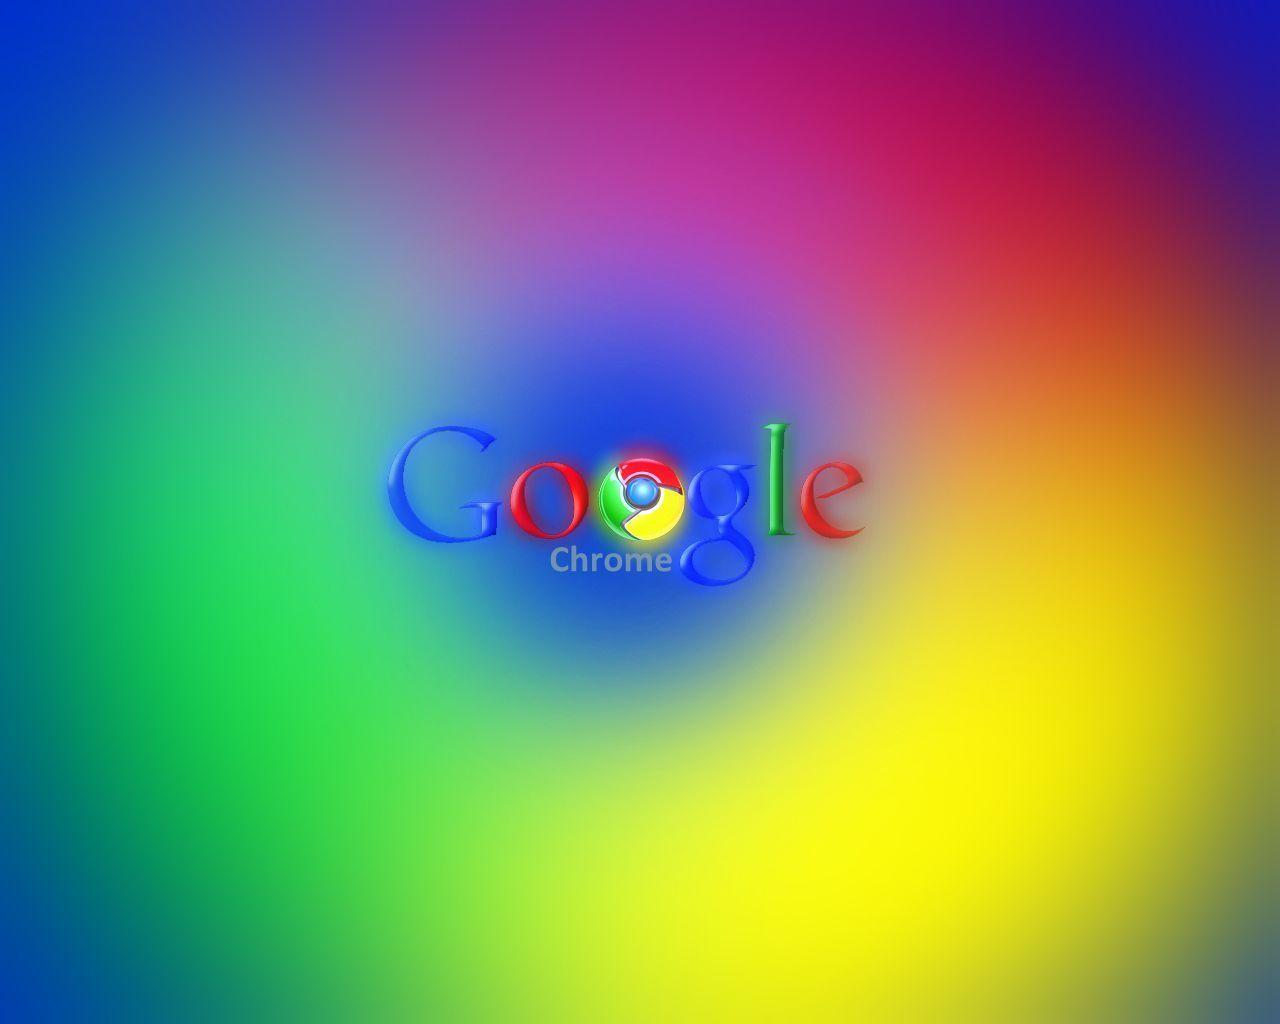 Google Chrome Wallpaper Backgrounds - Wallpaper Cave